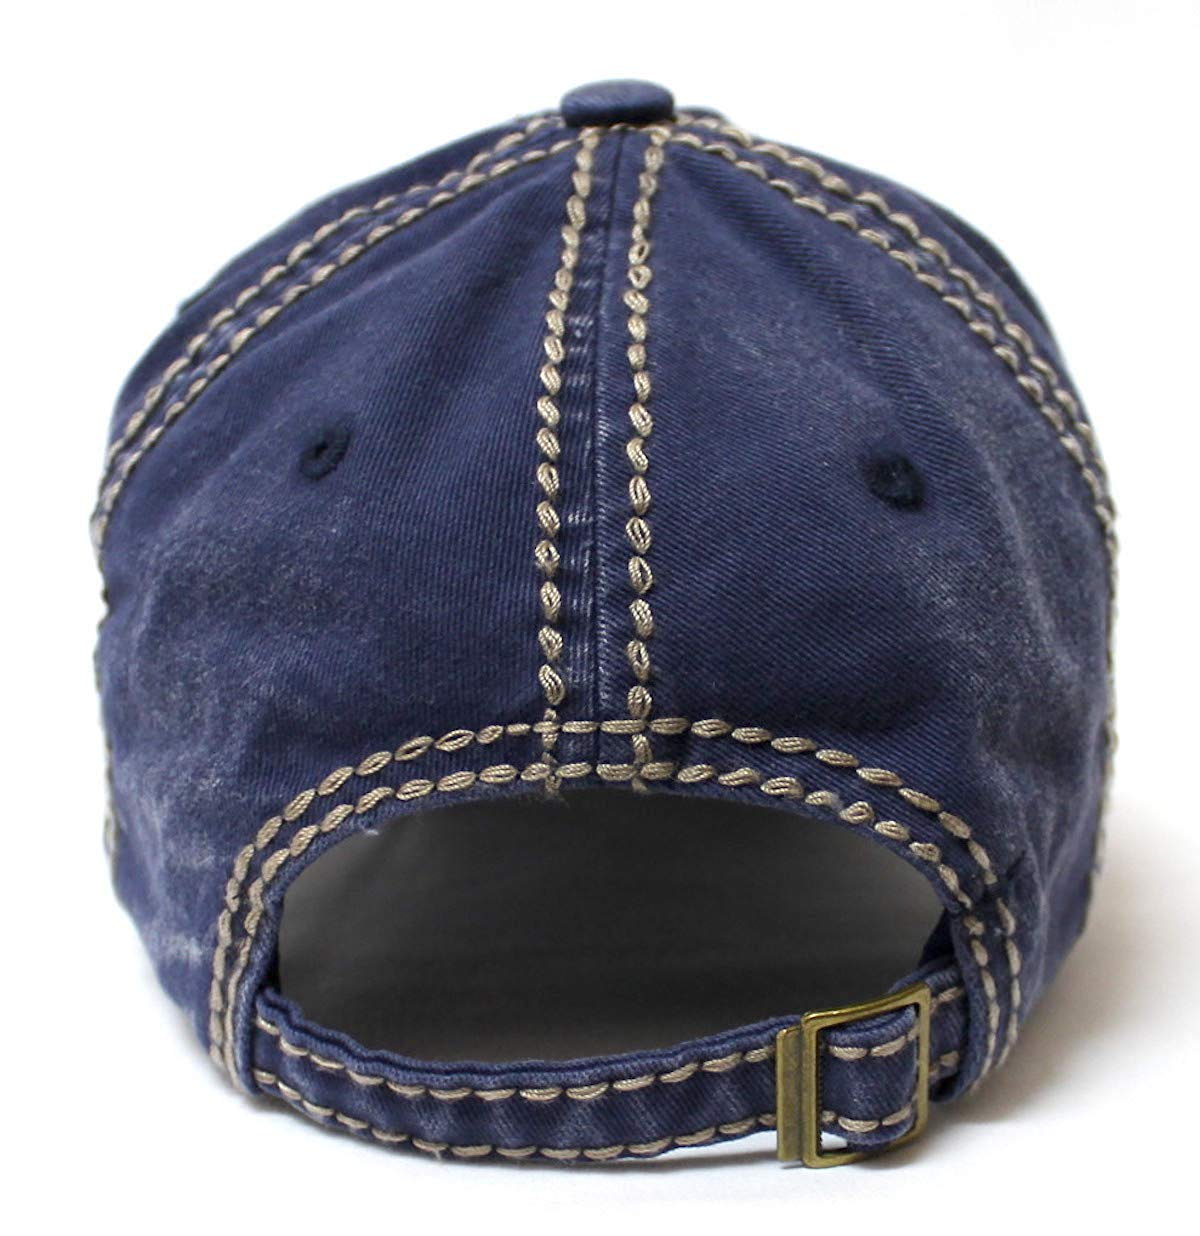 Classic Varsity Ball Cap Life Begins After Coffee Patch Embroidery Hat, Navy Blue - Caps 'N Vintage